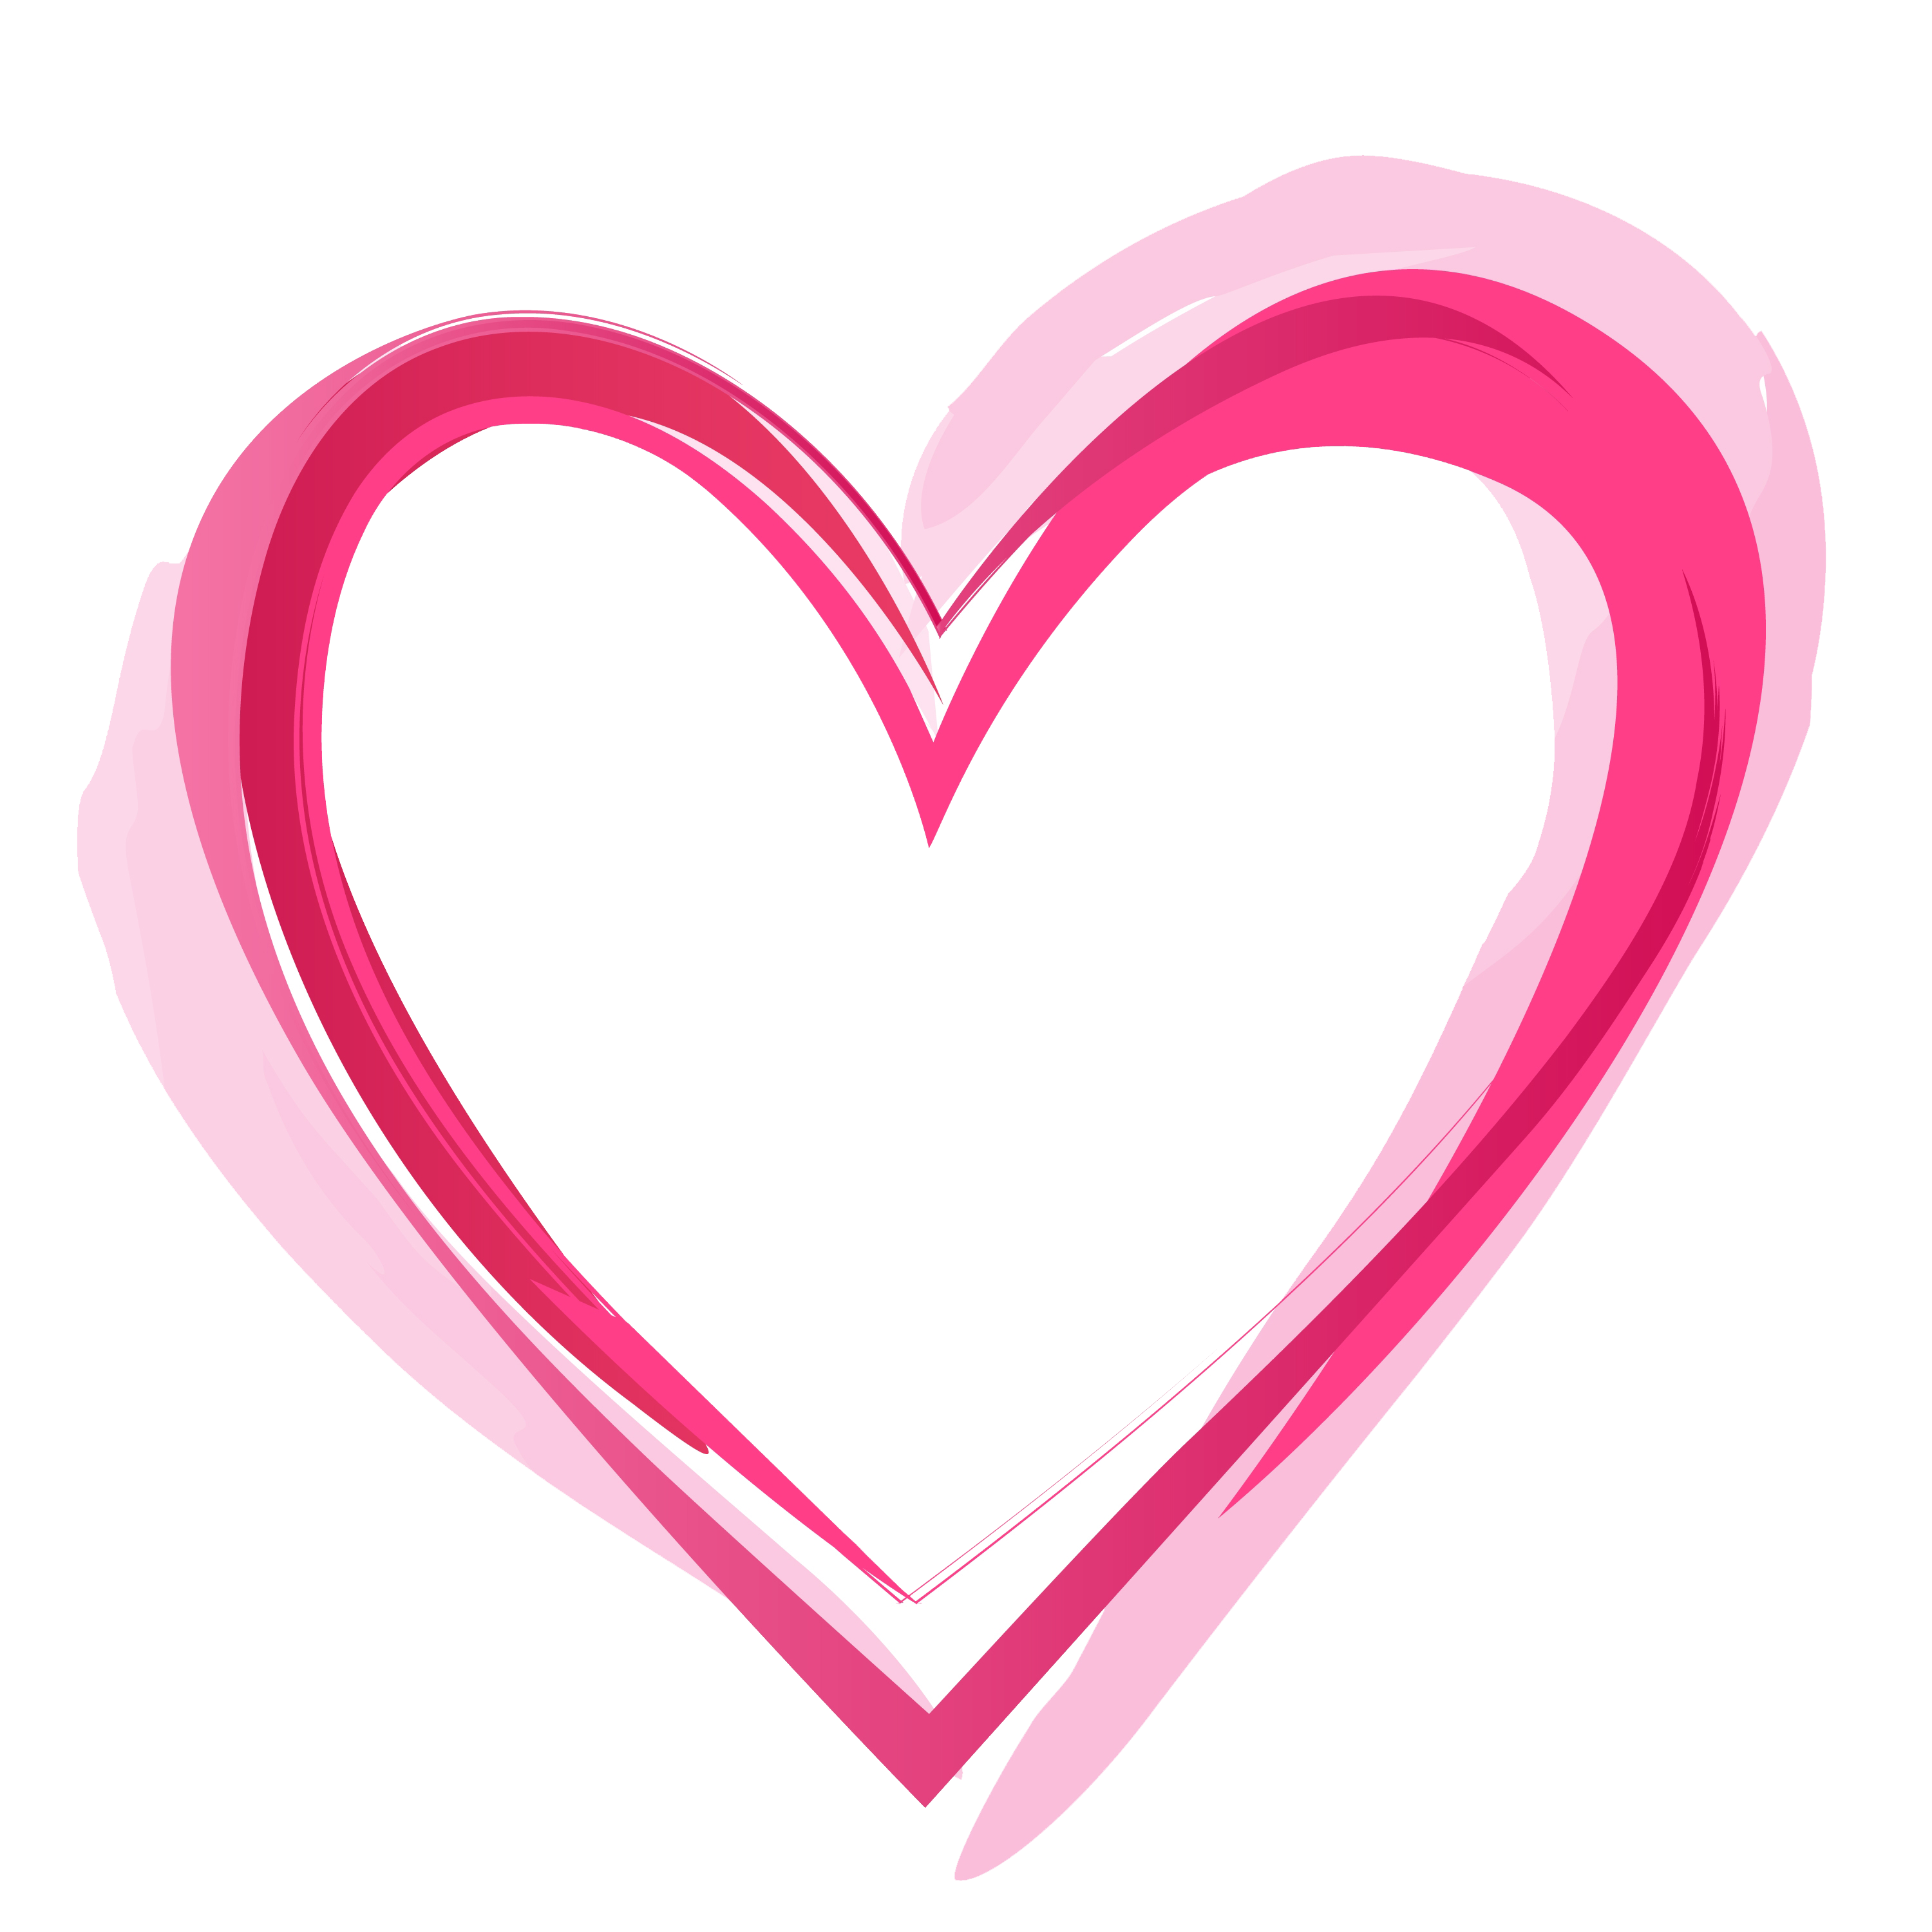 Heart free images download. Hearts png transparent